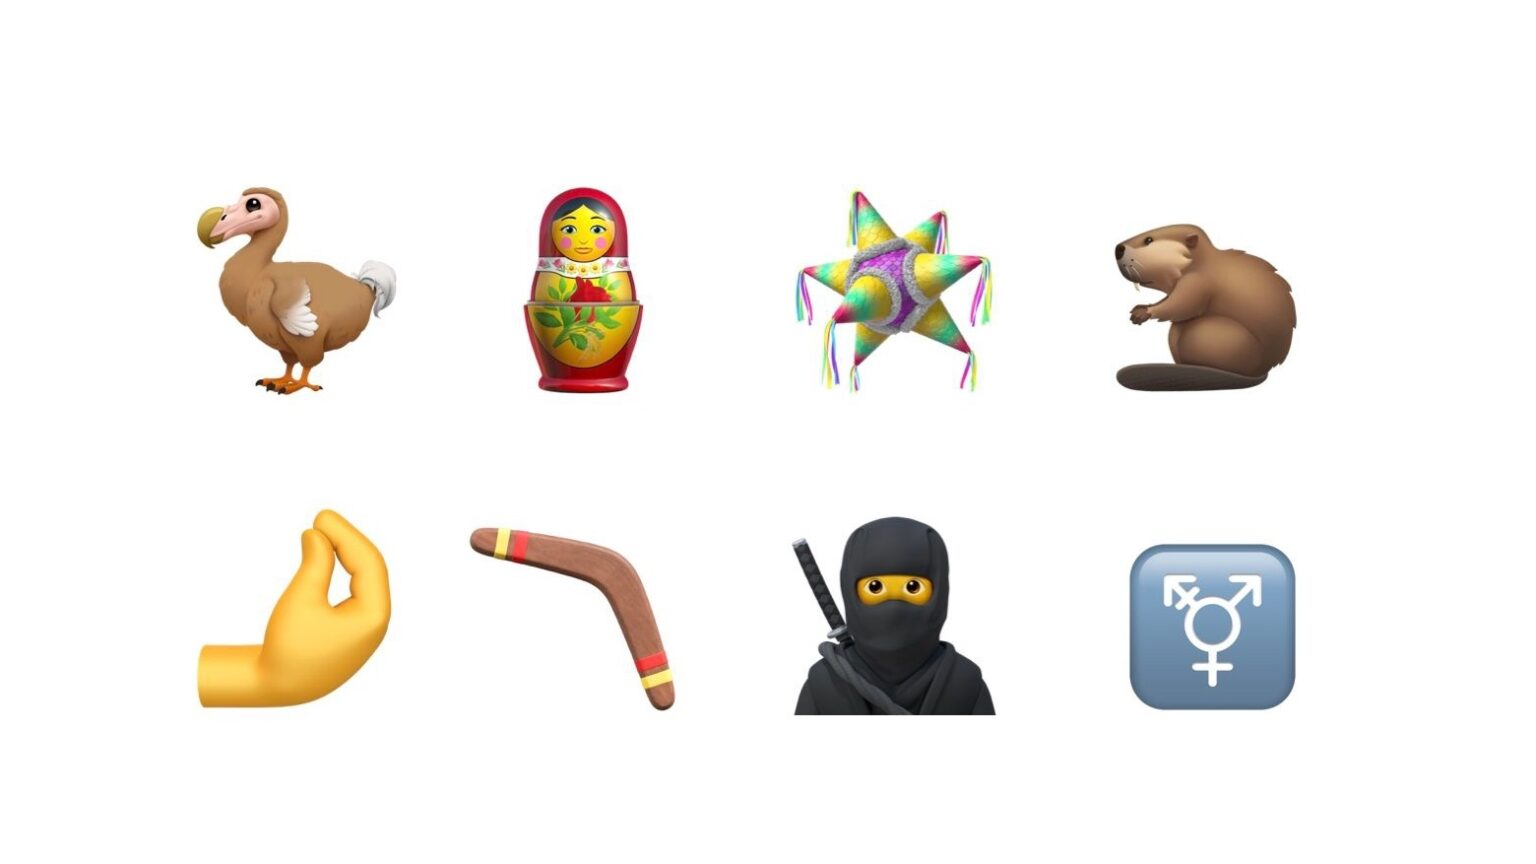 iOS 14.2 beta 2 is all be out emoji.